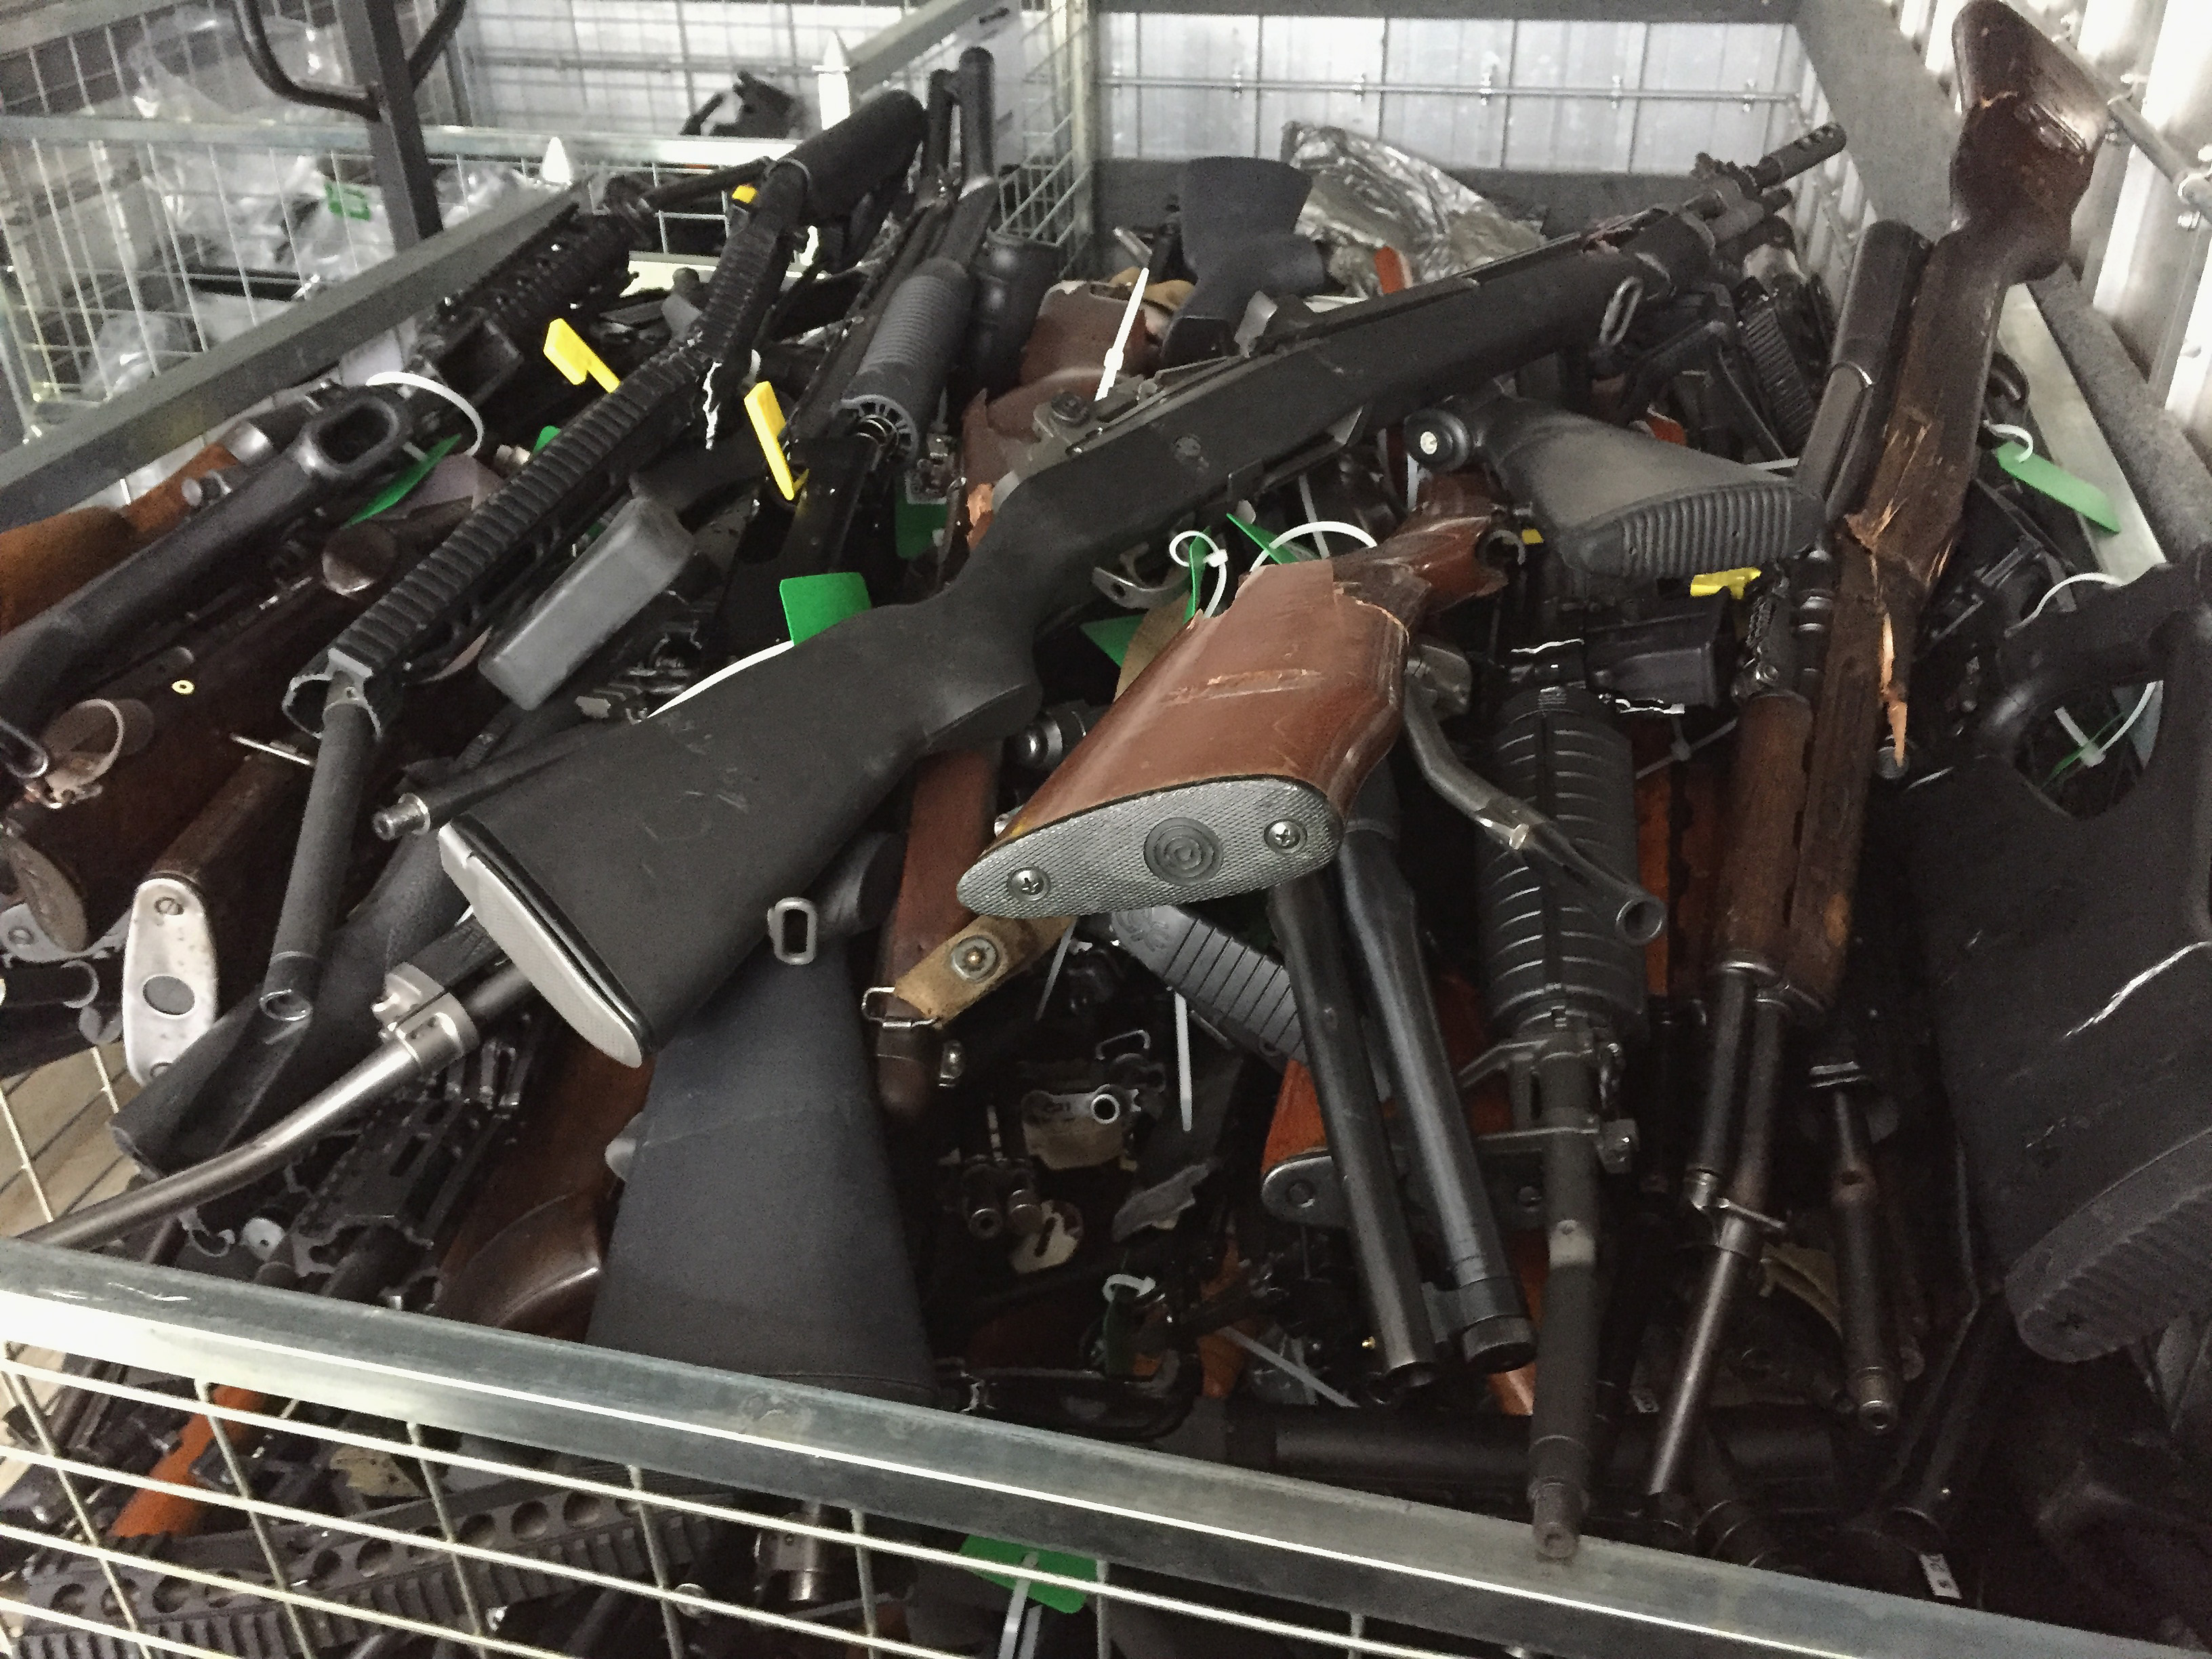 In this handout image provided by New Zealand Police, collected firearms are seen at Riccarton Racecourse on July 13, 2019 in Christchurch, New Zealand. It is the first firearms collection event to be held in New Zealand following changes to gun laws, providing firearms owners the initial opportunity of many to hand-in prohibited firearms for buy-back and amnesty. The Christchurch event is one of 258 events that will run across the country over the next three months.The NZ Government will pay owners between 25 per cent and 95 per cent of a set base price, depending on condition. It will also compensate dealers and pay for some weapons to be modified to make them legal. The amnesty ends on December 20. (Photo by New Zealand Police/Getty Images)